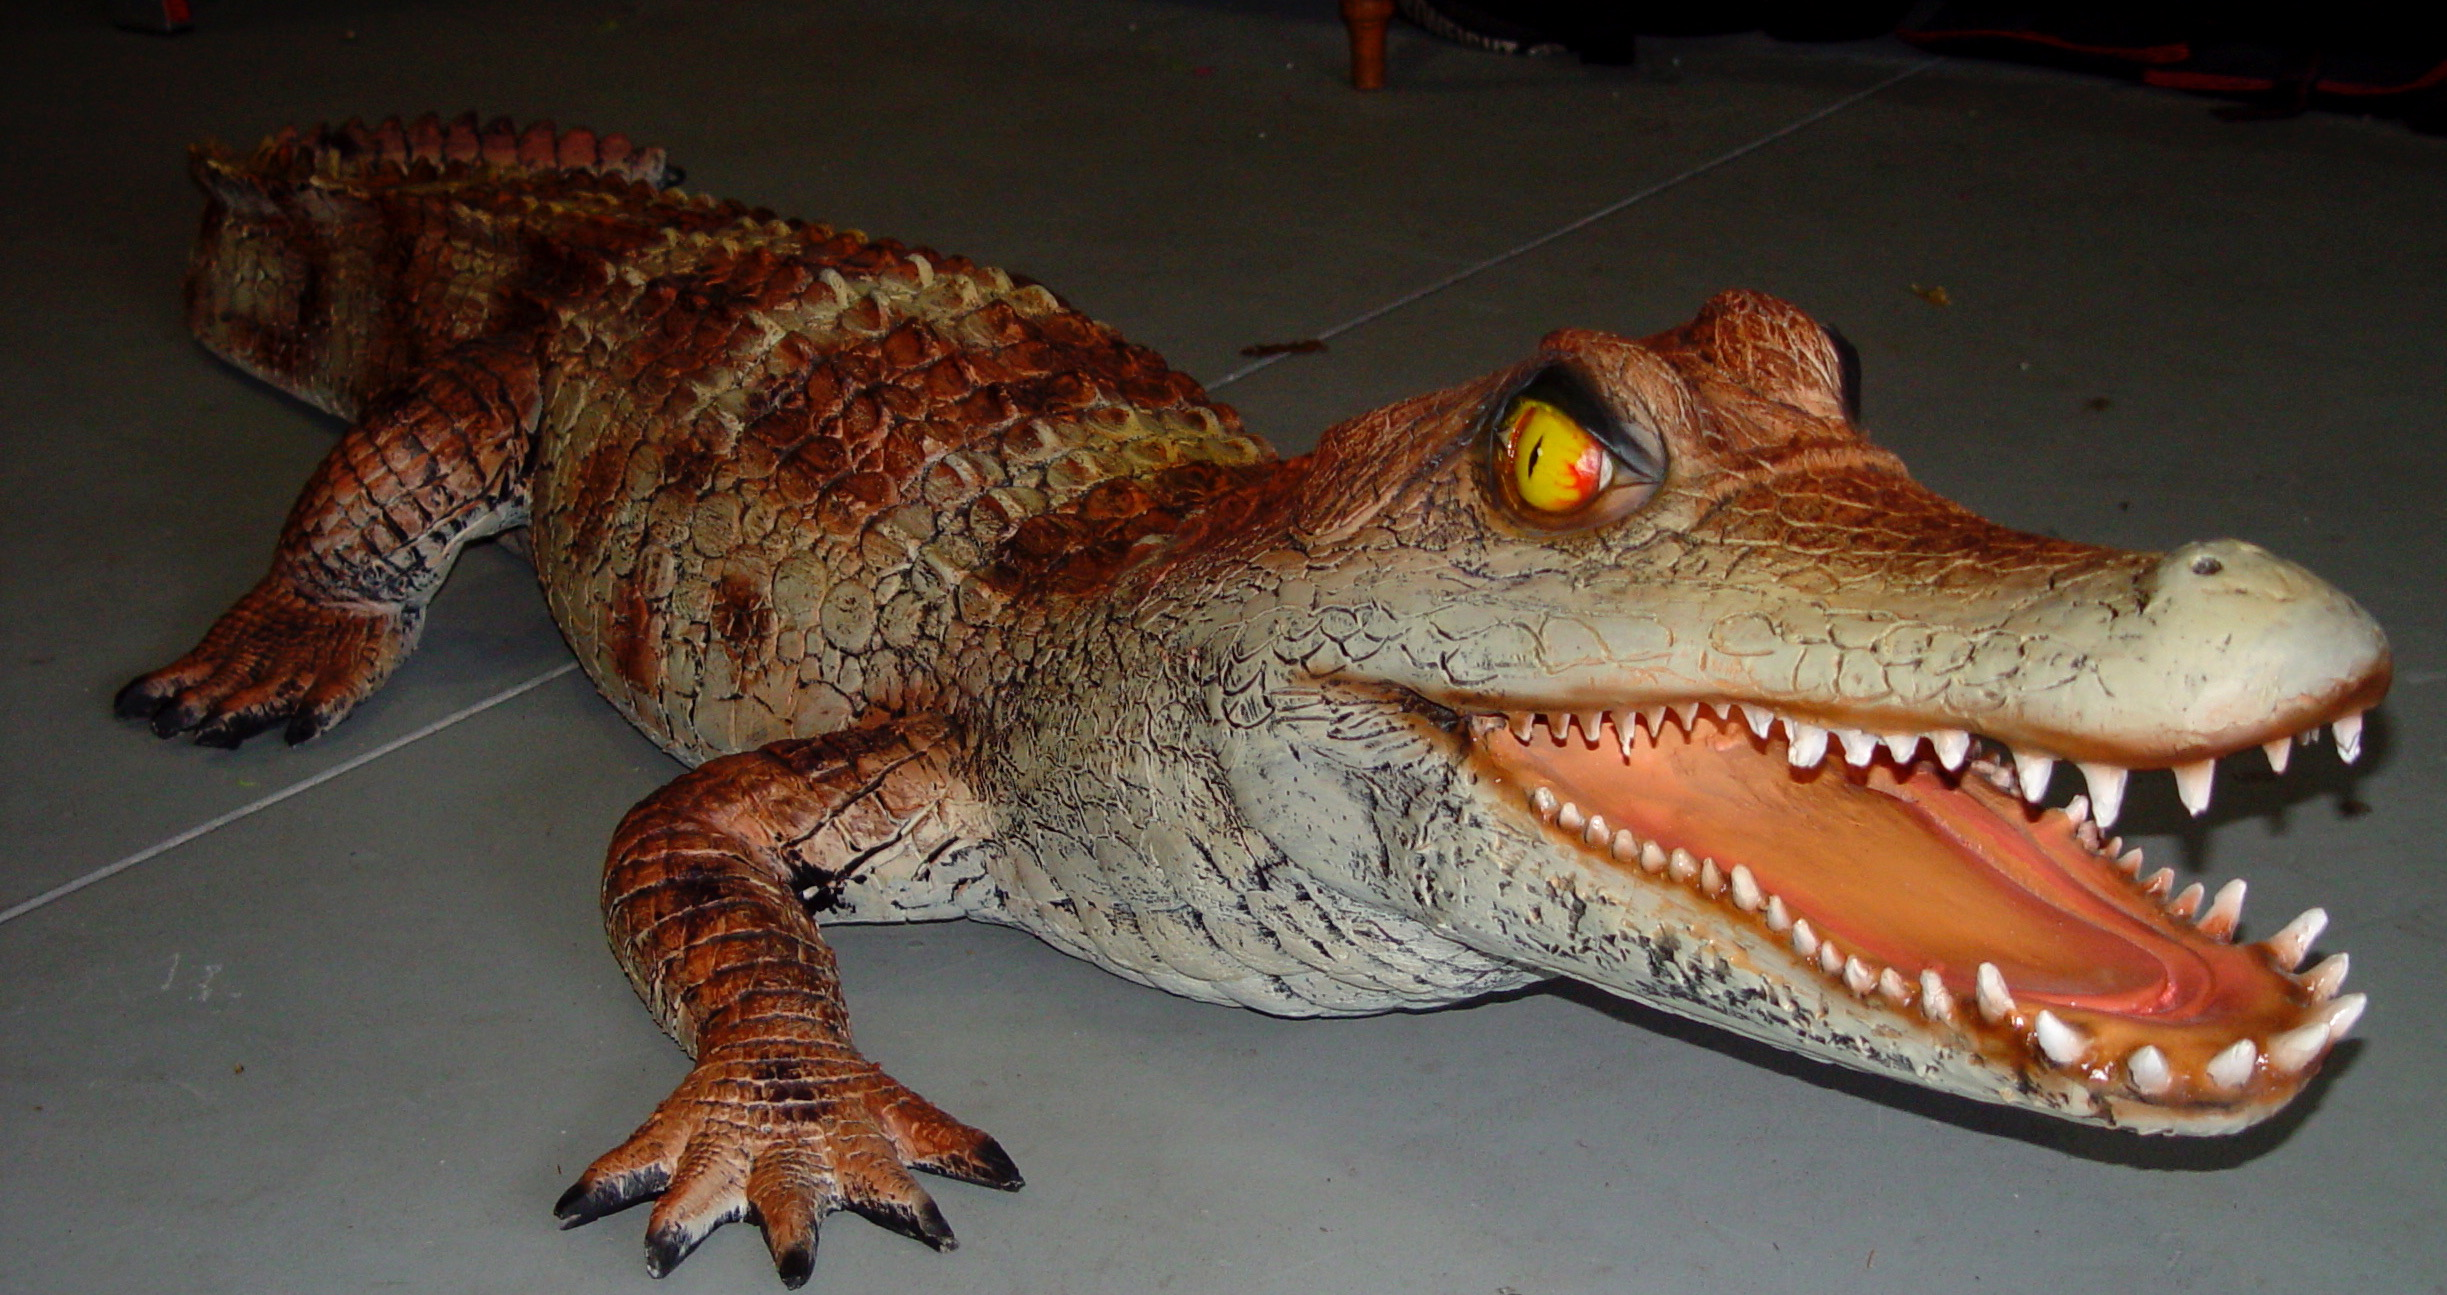 aligator+crocodile+jumbo+prop+for+rent+animal+props+nj+ny+pa+eggsotic+events.jpeg